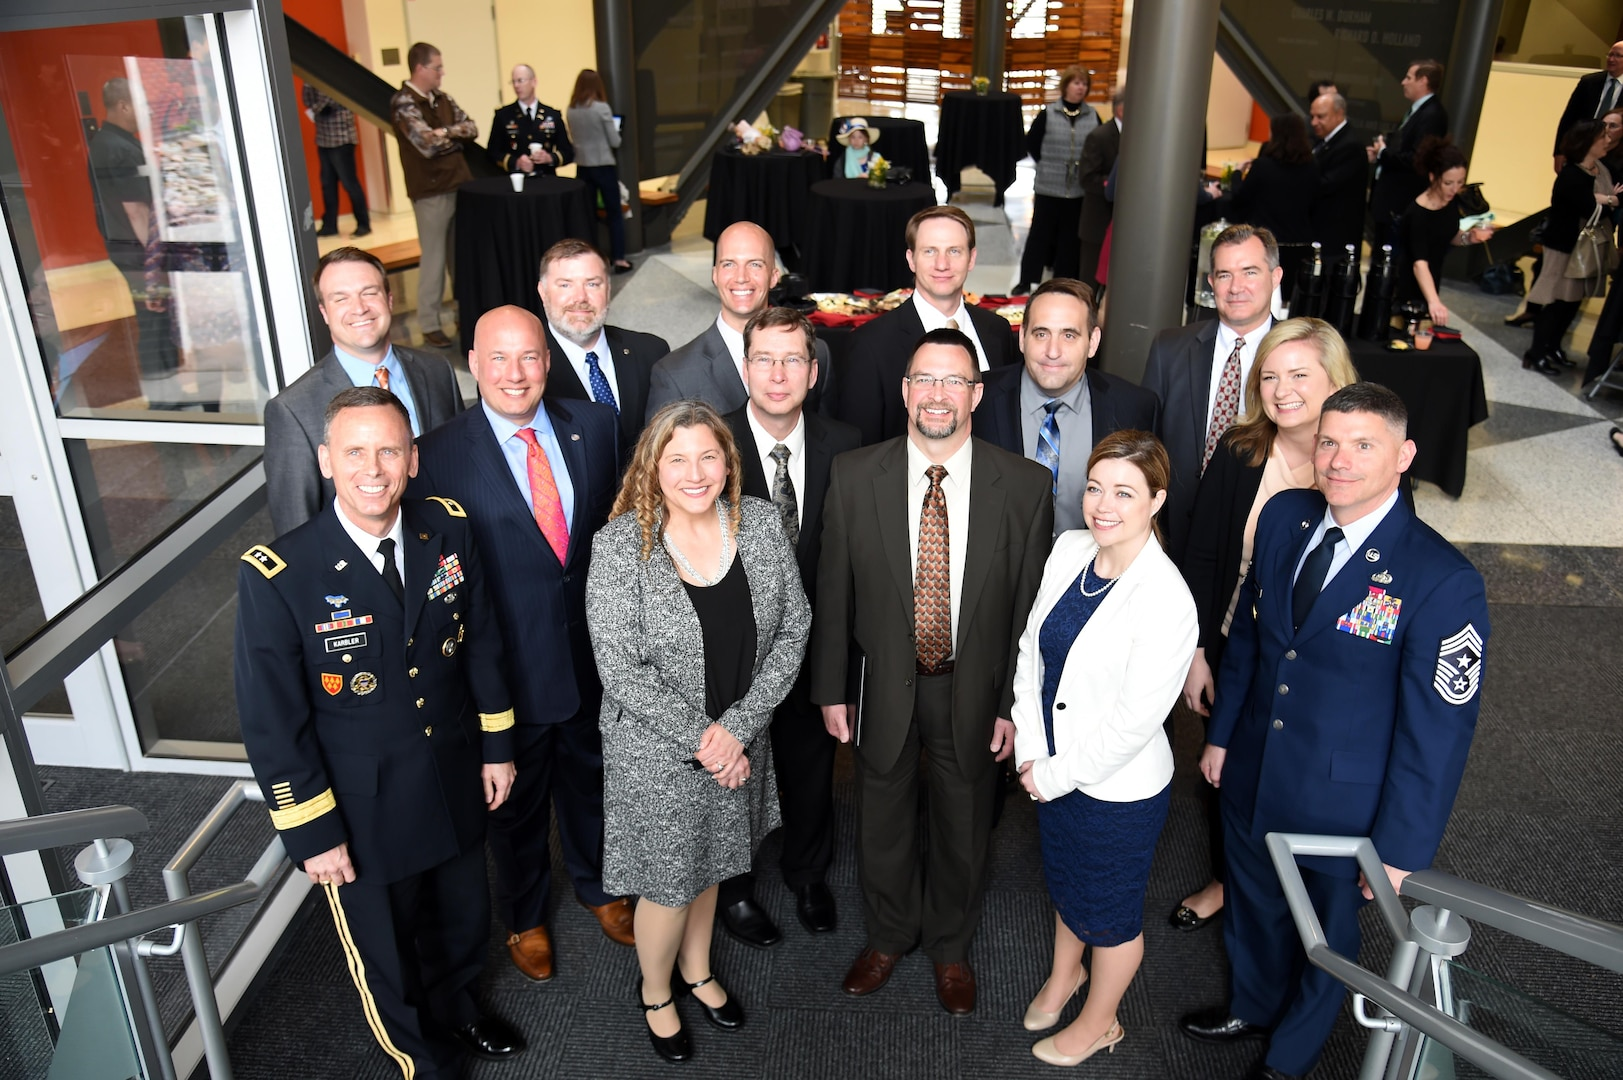 U.S. Army Maj. Gen. Daniel Karbler (front, left), U.S. Strategic Command (USSTRATCOM) chief of staff; U.S. Air Force Chief Master Sgt. Patrick F. McMahon (front, right), USSTRATCOM senior enlisted leader; Dr. Douglas Derrick (second row, 2nd from right), University of Nebraska at Omaha (UNO) fellowship co-director; and Dr. Gina Ligon (second row, right), UNO fellowship co-director, recognize graduates of the Strategic Leadership Fellows Program at UNO's Peter Kiewit Institute, April 21, 2017. The National Strategic Research Institute, UNO and USSTRATCOM launched the inaugural fellows program in 2014. Each year, 10 USSTRATCOM employees are hand-selected as Strategic Leadership Fellows for the spring academic semester. Fellows are charged with scholarly research and writing aimed at addressing the nation's most urgent challenges.